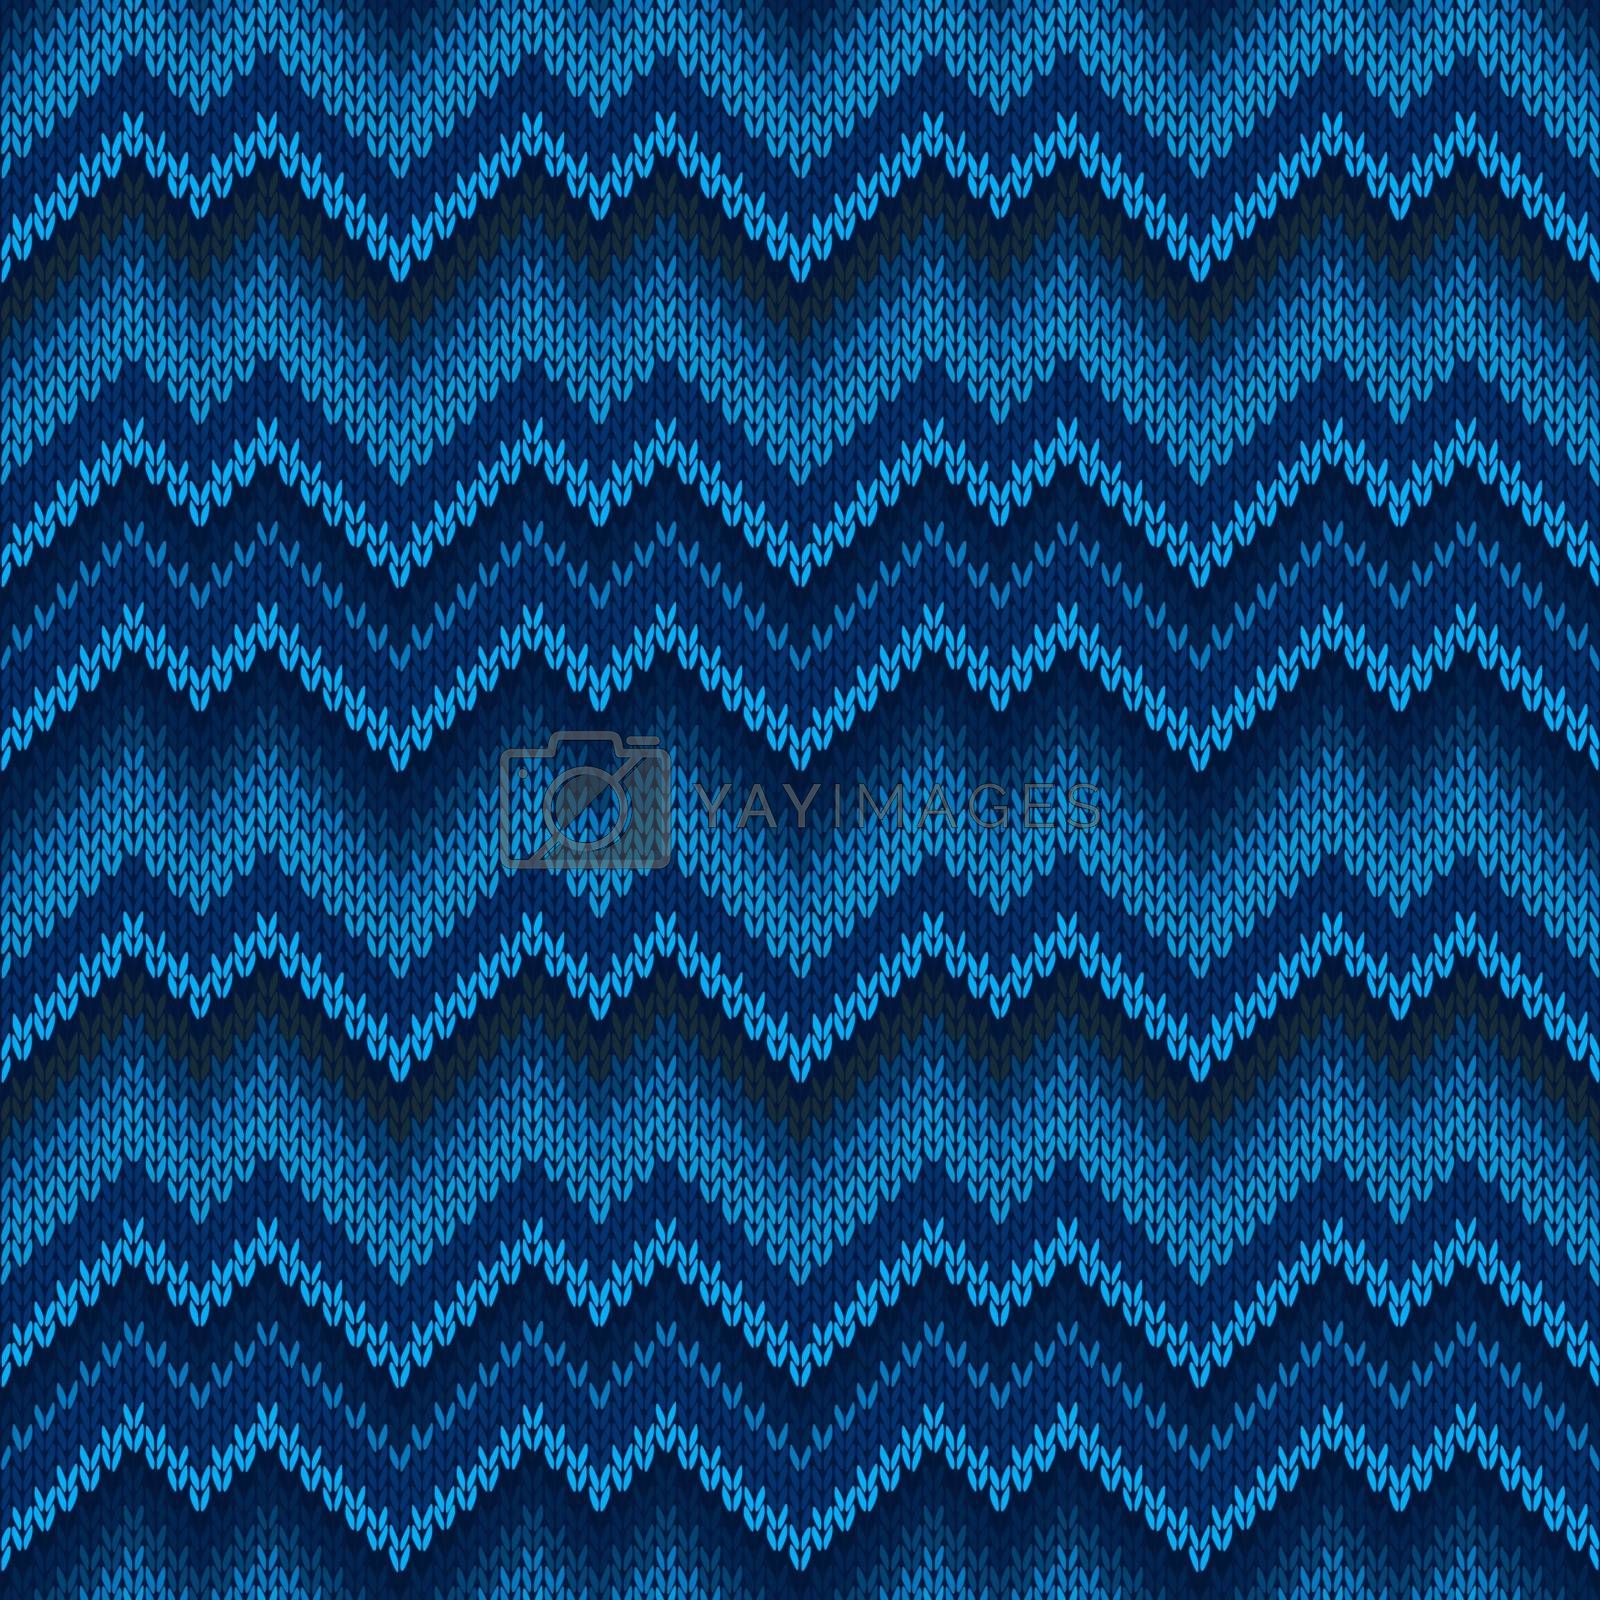 Seamless knitted pattern in blue. Zigzag embroidery